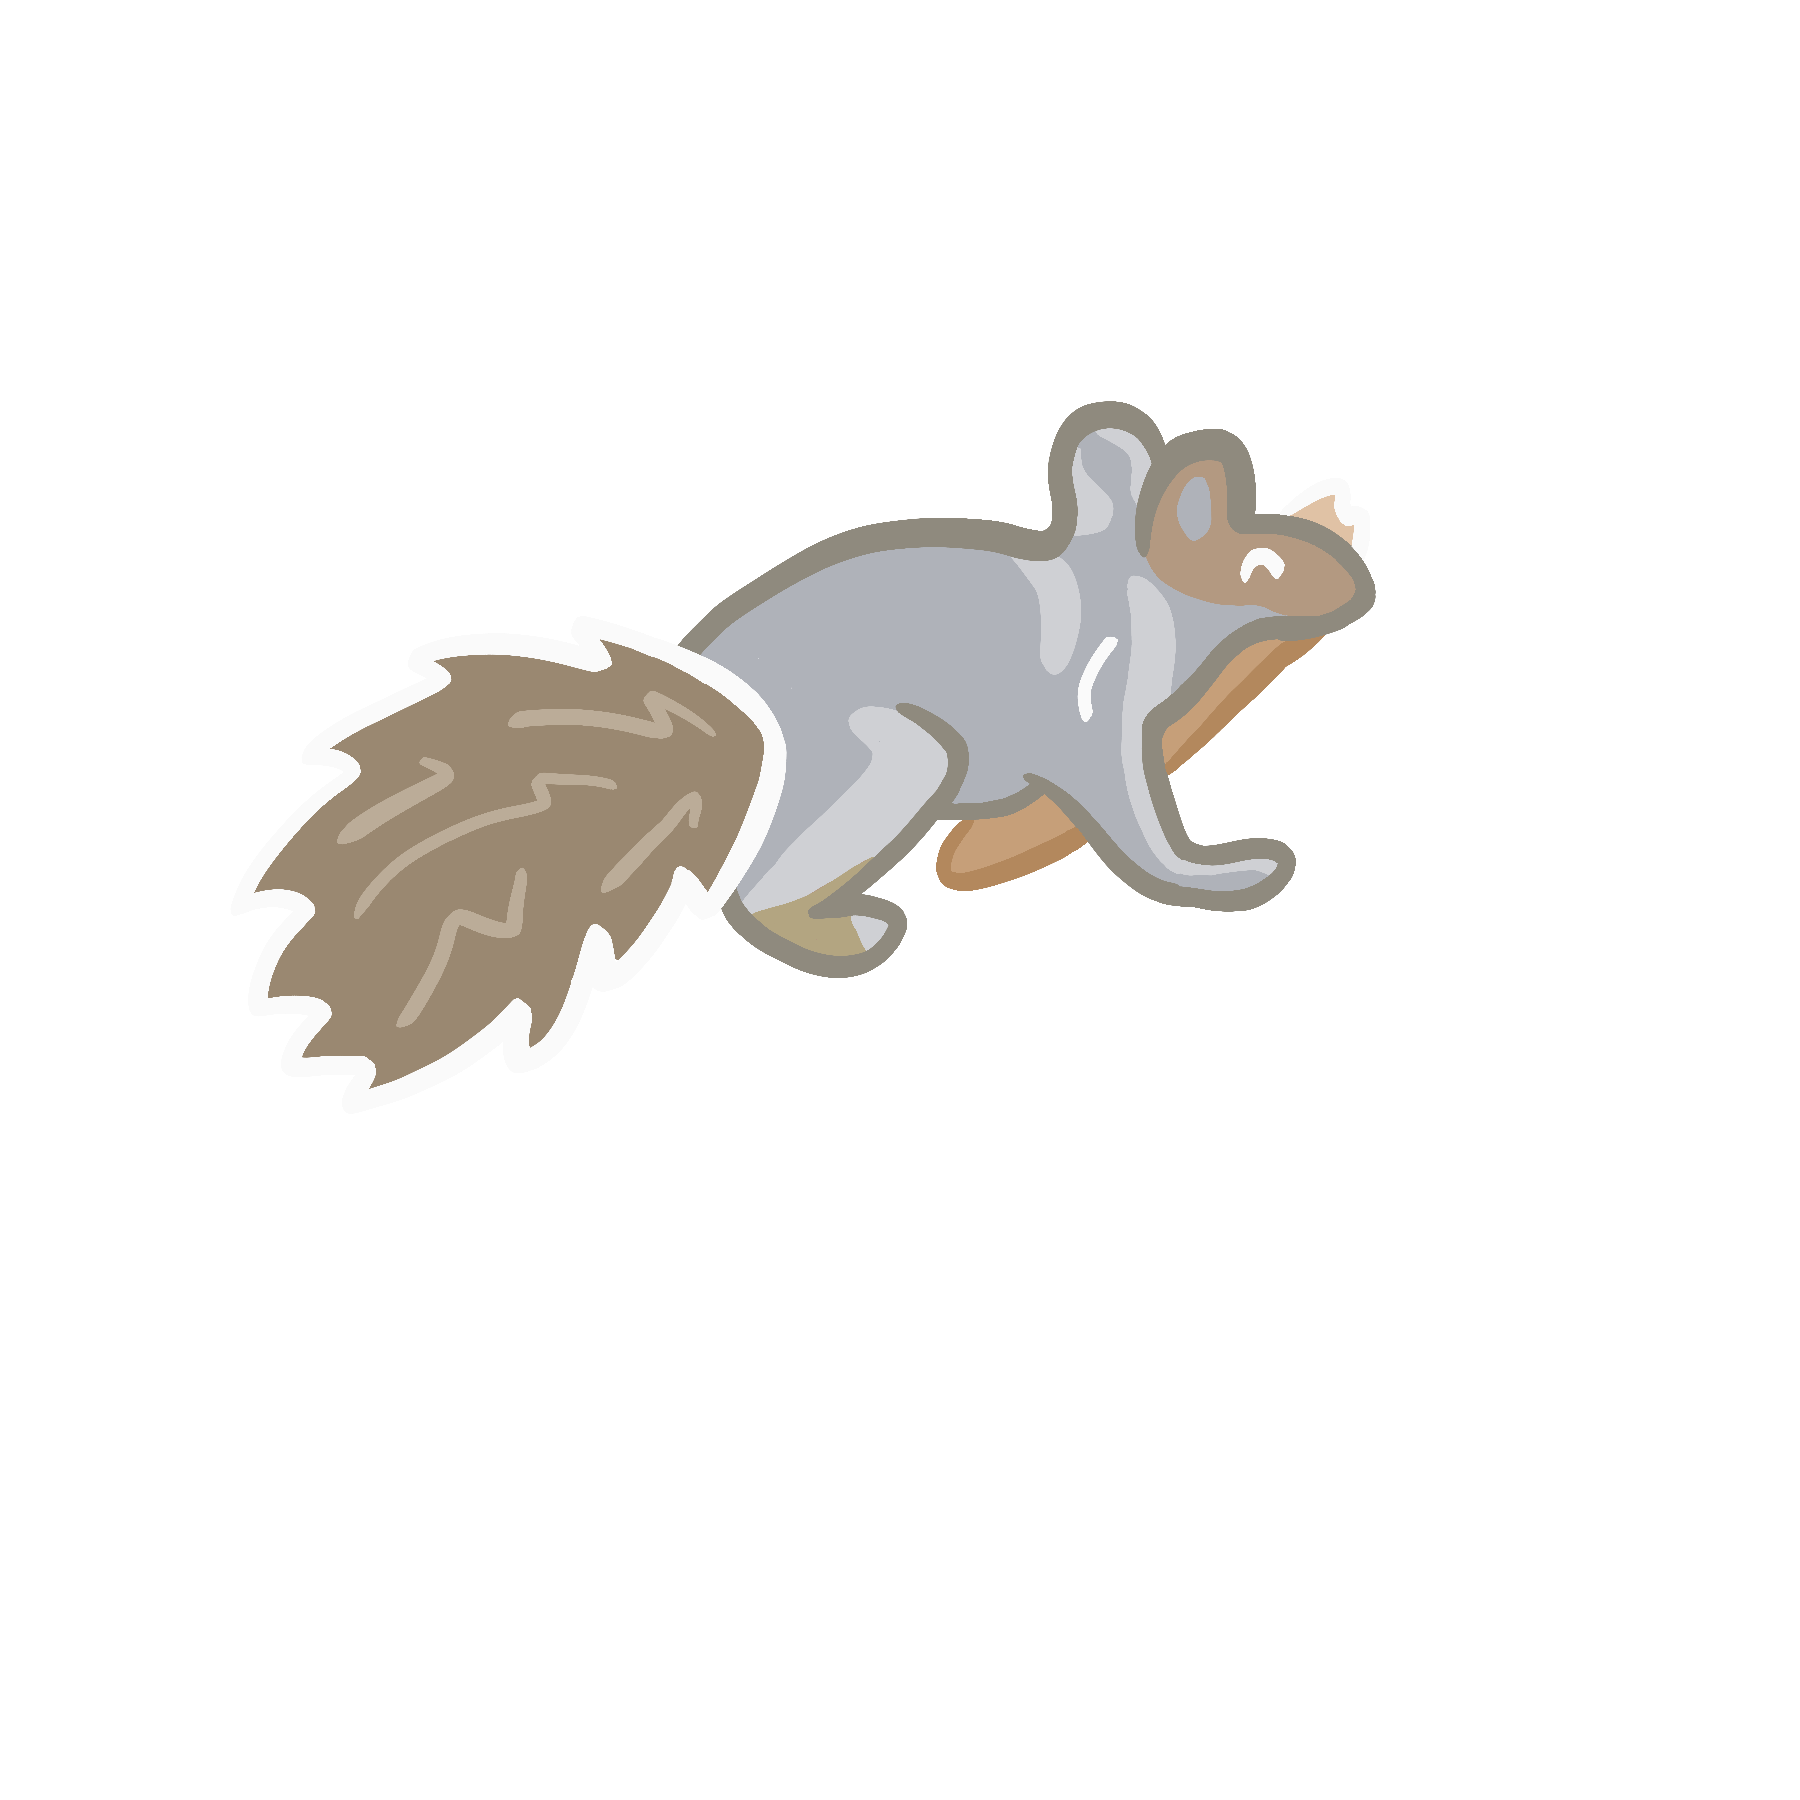 Image of a cartoon squirrel with a slice of pizza in its mouth